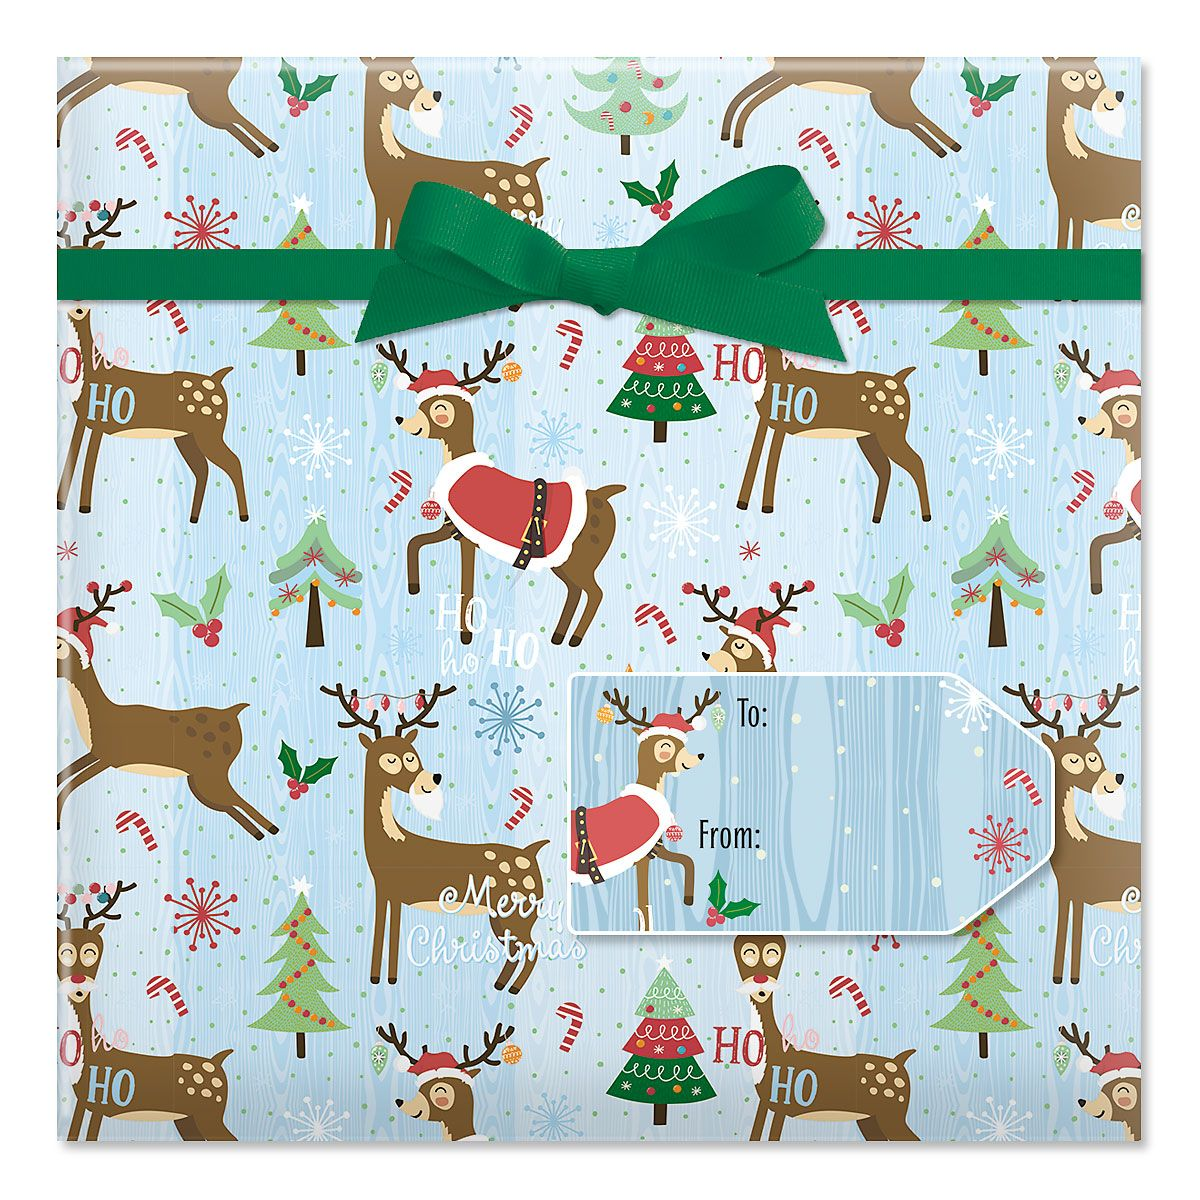 Playful Reindeer Jumbo Rolled Gift Wrap and Labels